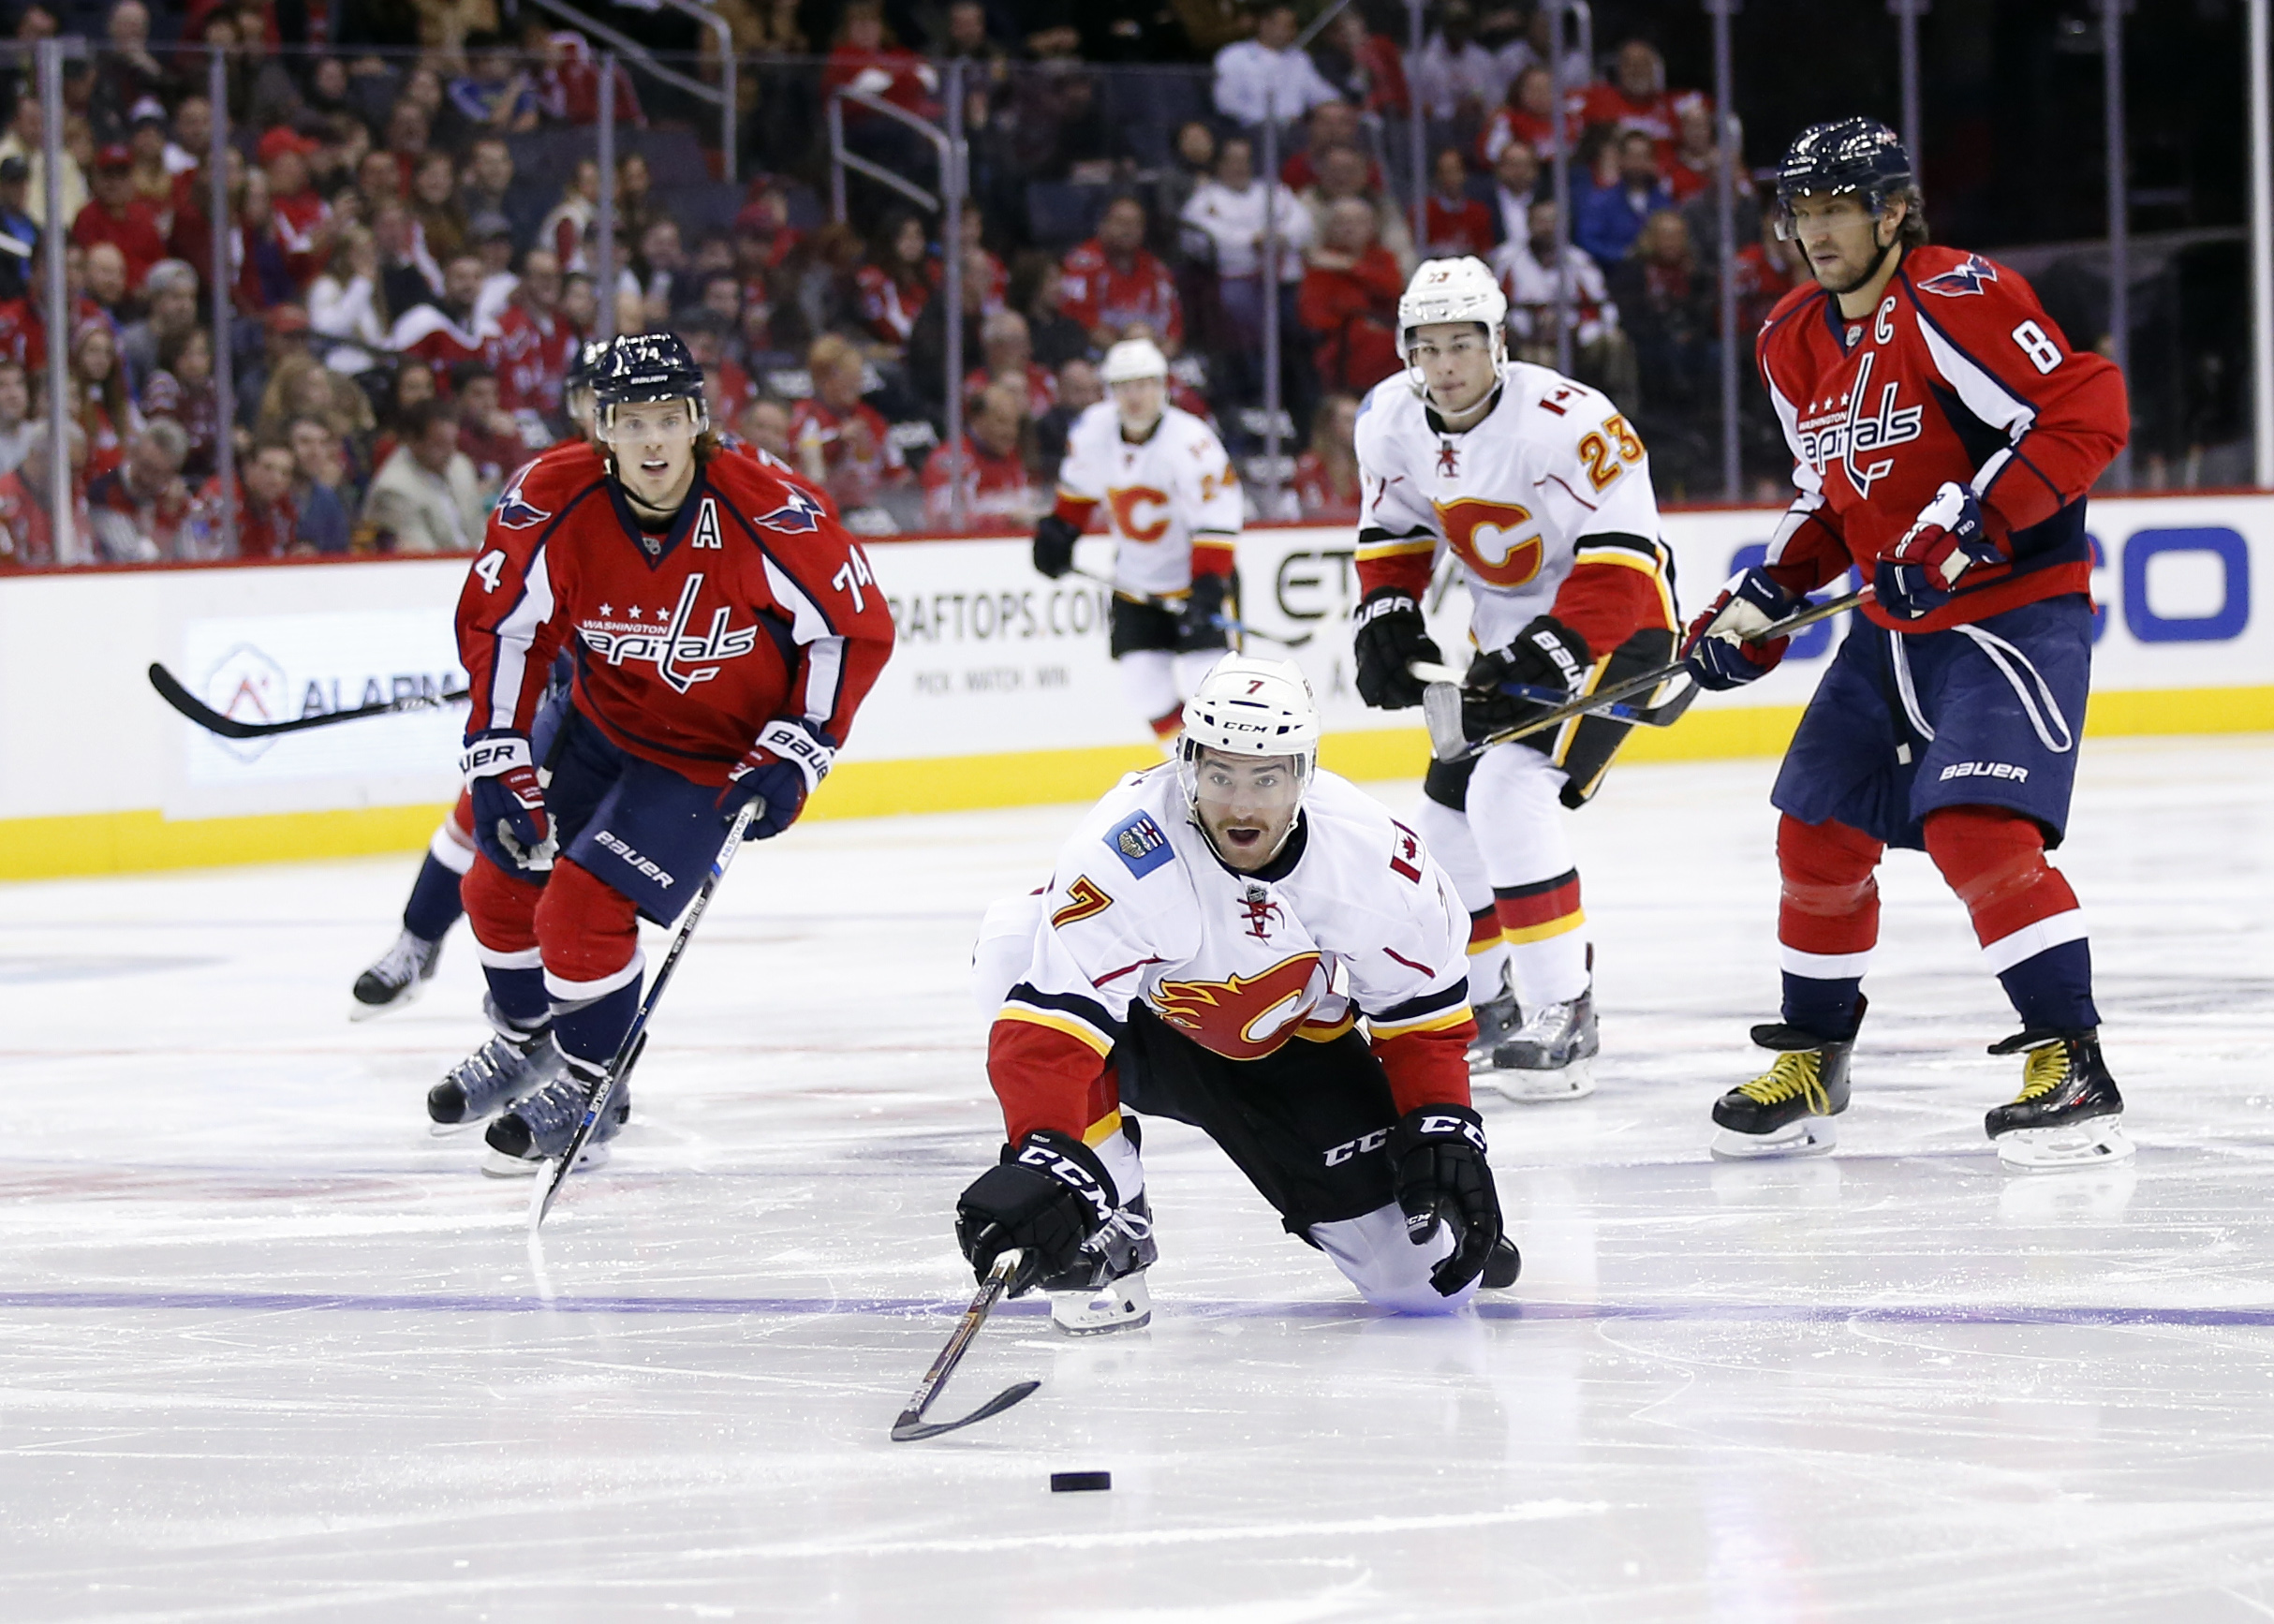 Calgary Flames defenseman T.J. Brodie (7) lunges for the puck with Washington Capitals defenseman John Carlson (74) and left wing Alex Ovechkin (8), from Russia, nearby in the second period of an NHL hockey game, Friday, Nov. 13, 2015, in Washington. (AP